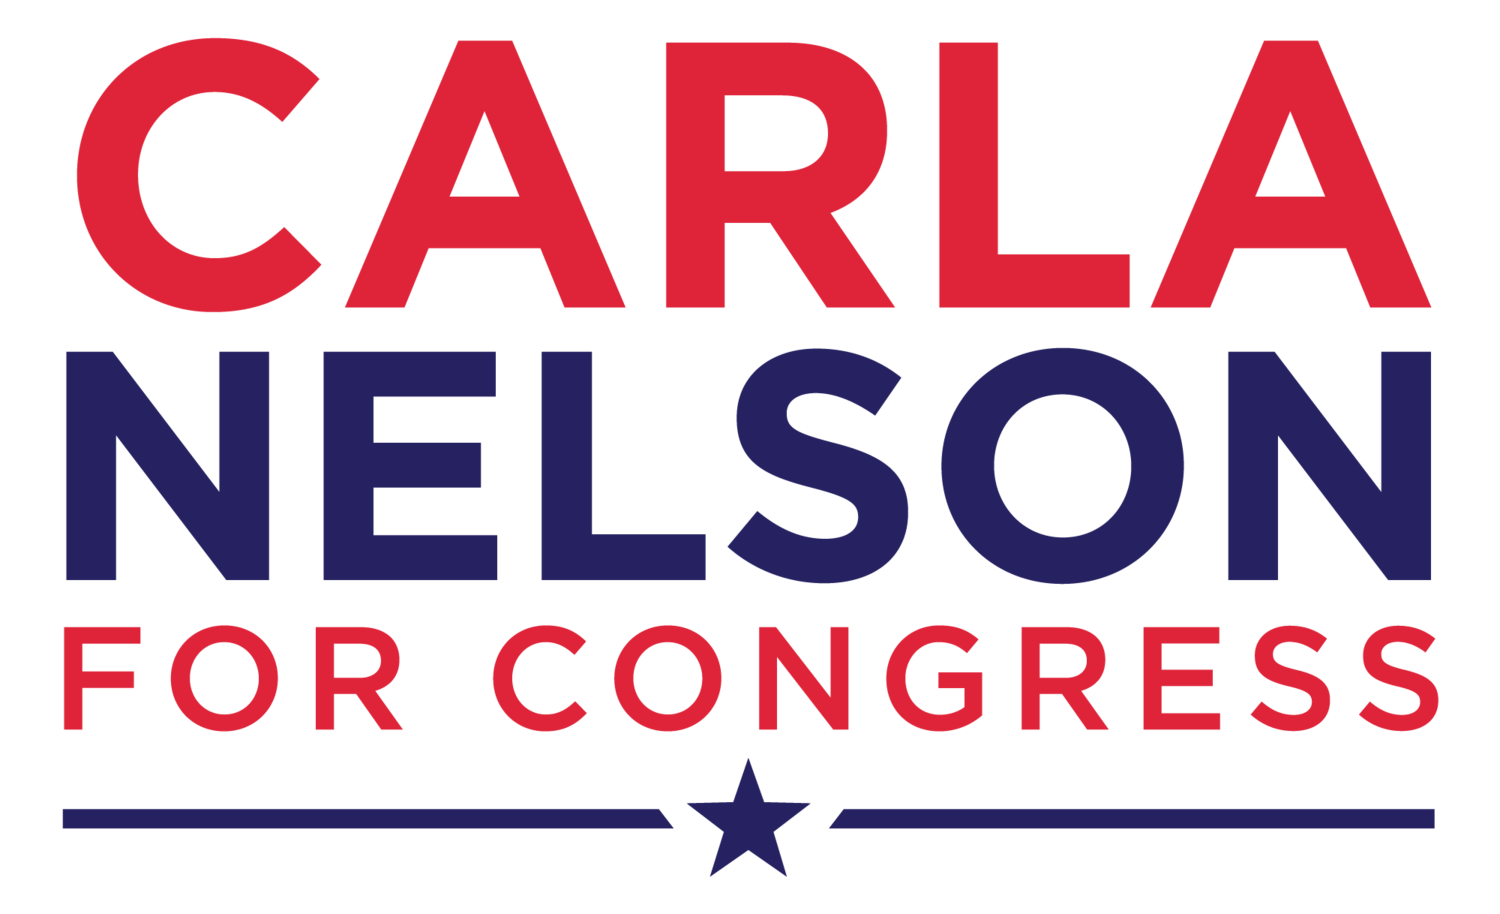 Carla Nelson for Congress